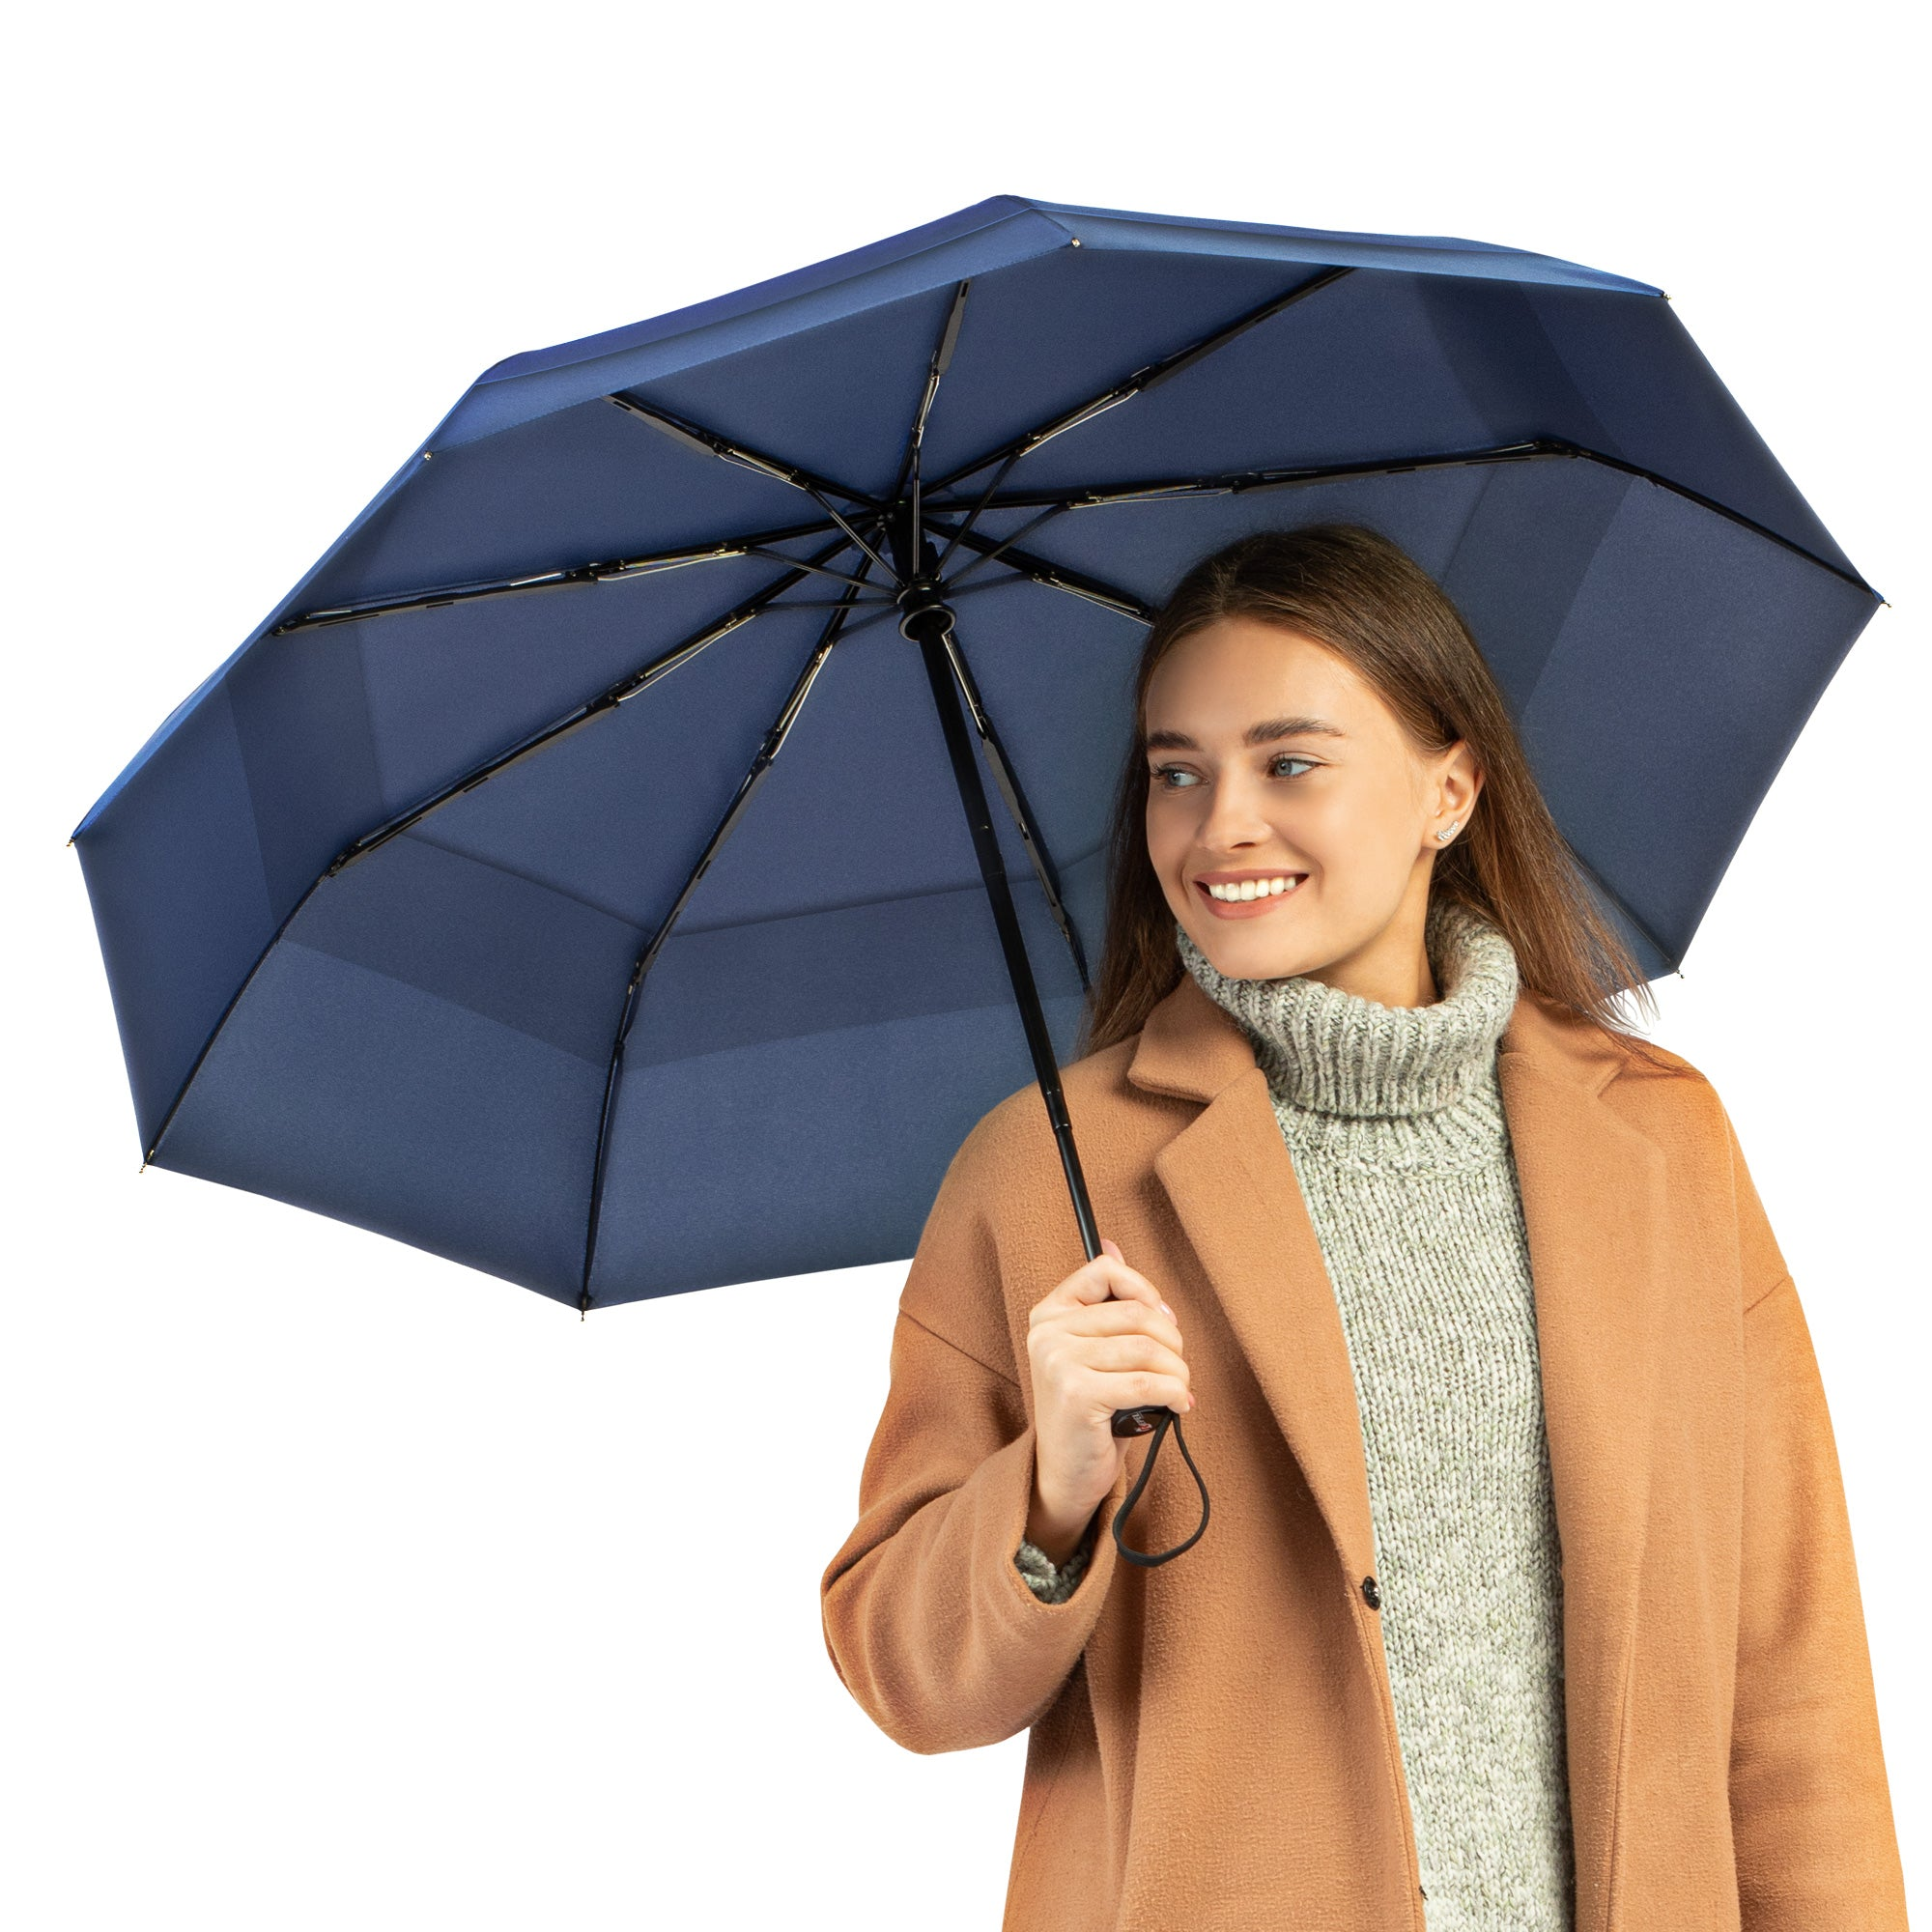 Travel Umbrella - Navy Blue